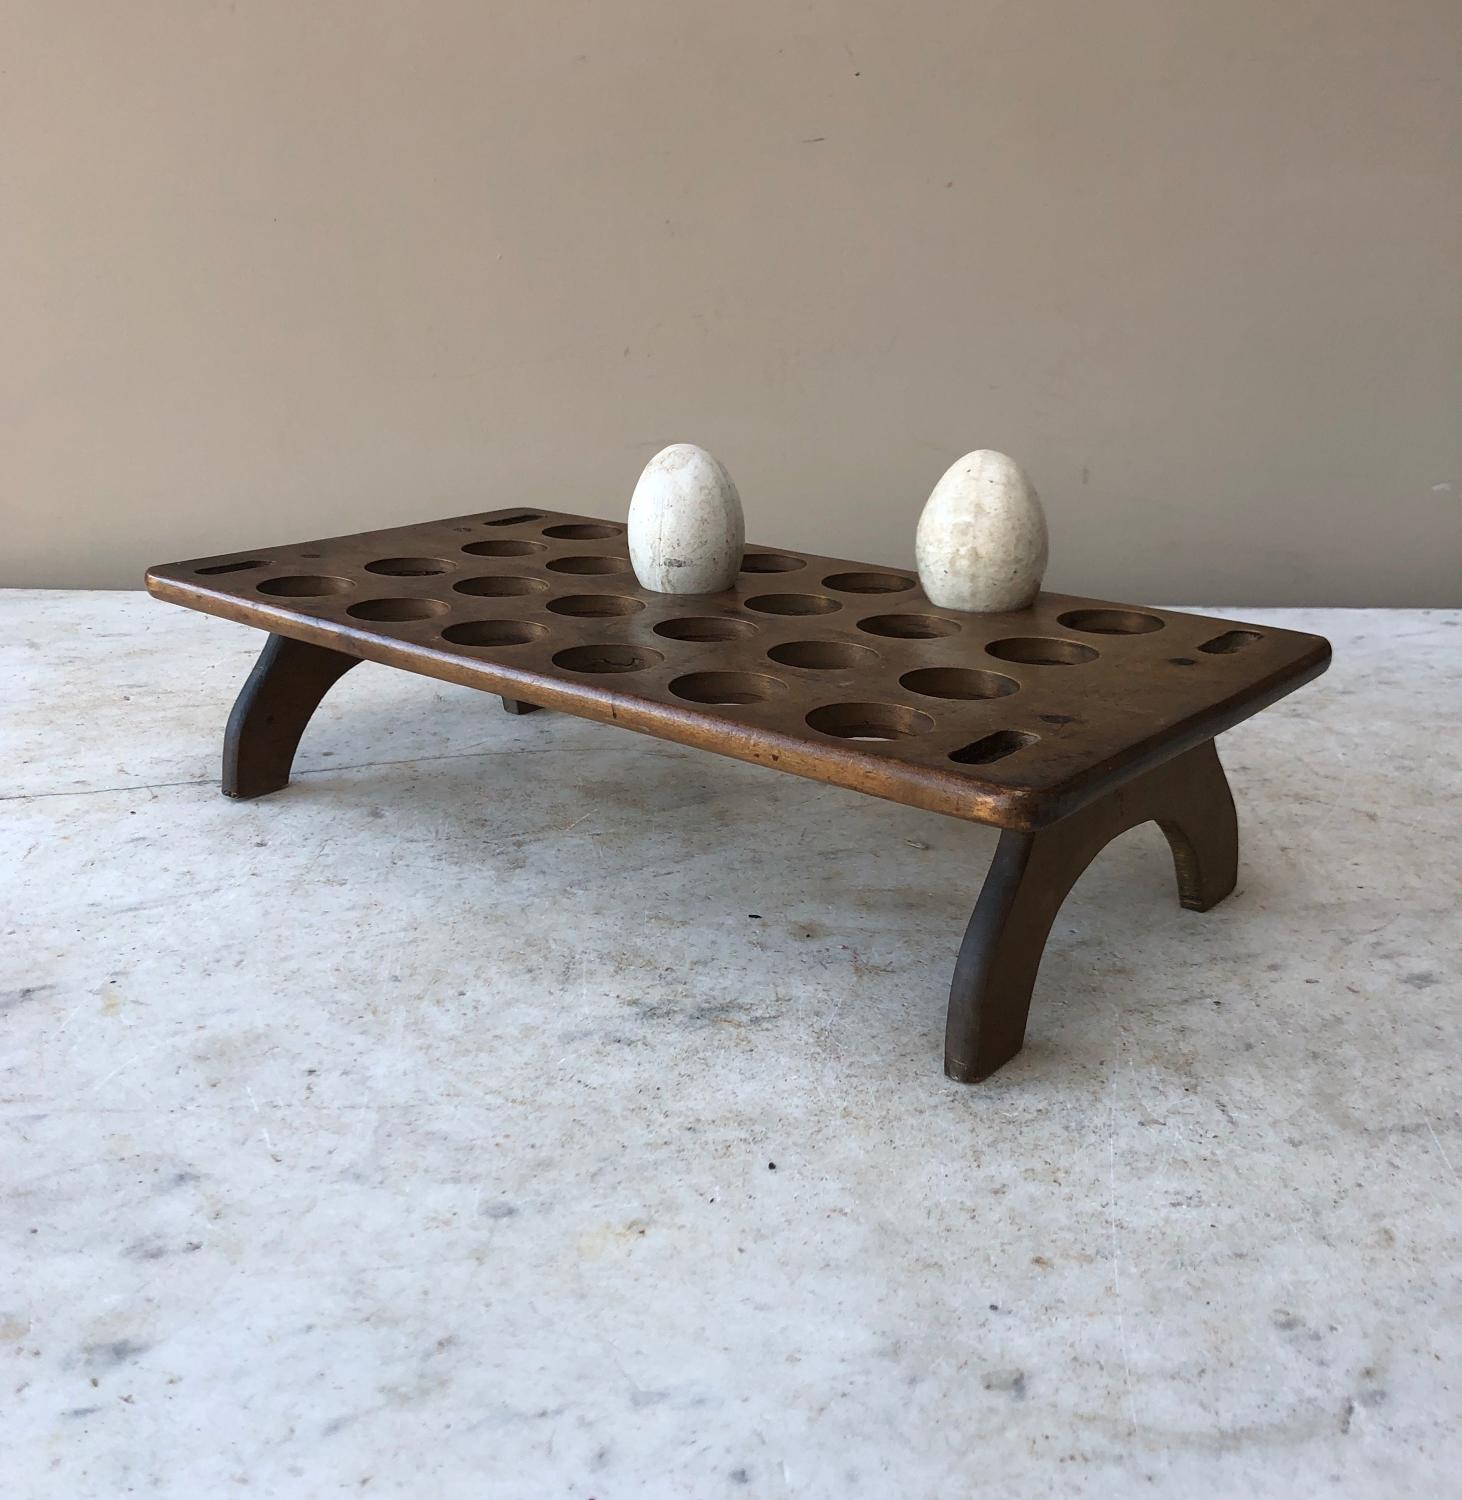 Late Victorian Large Treen Single Tier Egg Rack for 2 Dozen Eggs